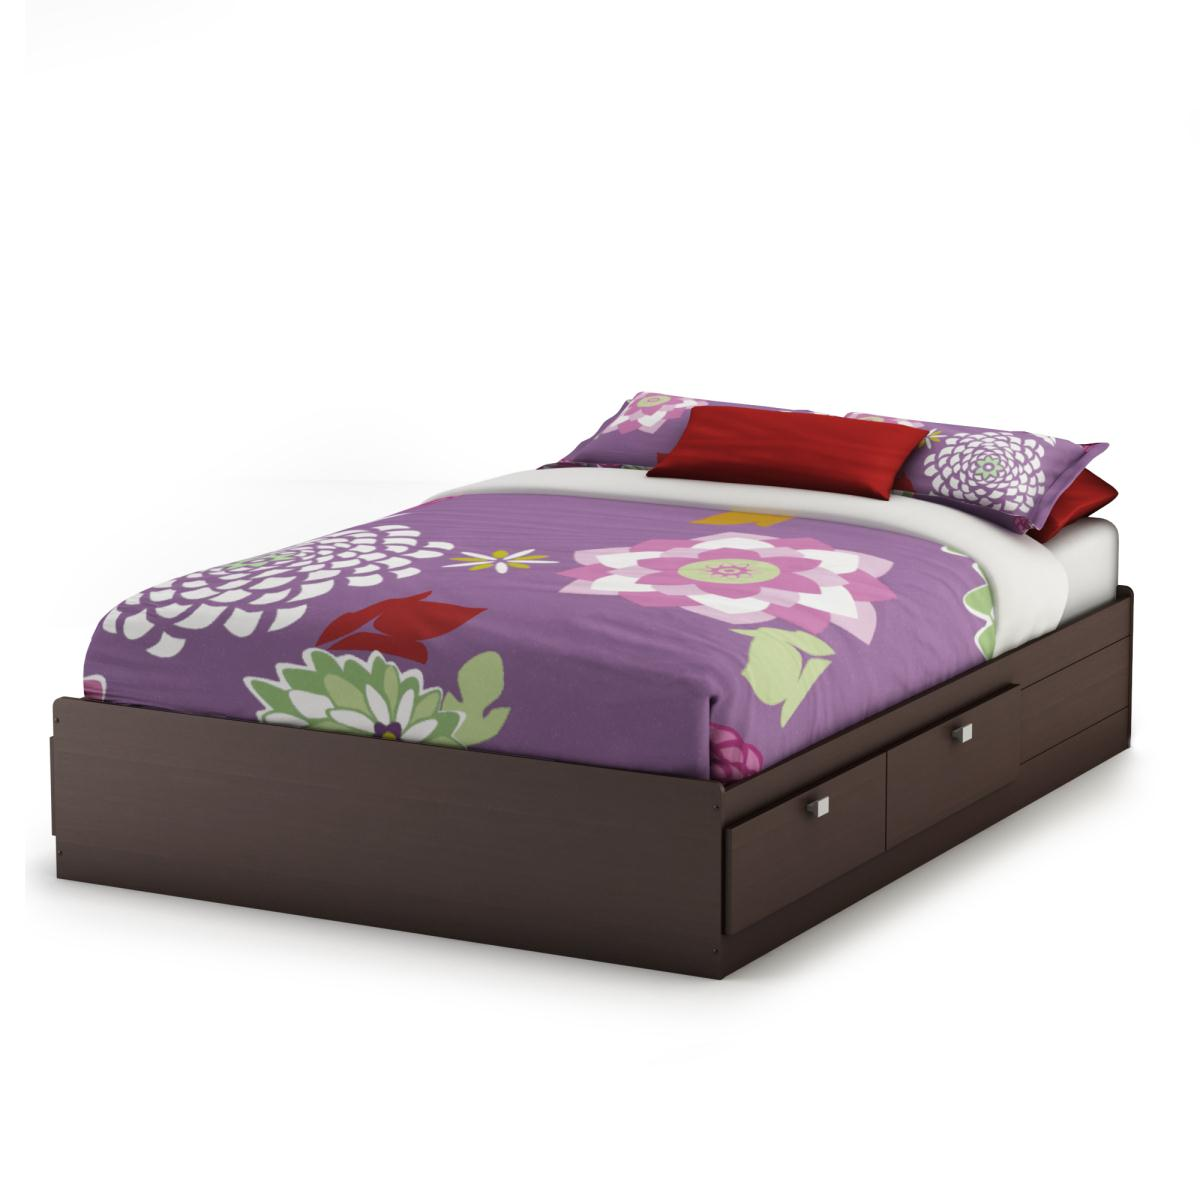 South Shore Cakao Full Mates Bed - Chocolate